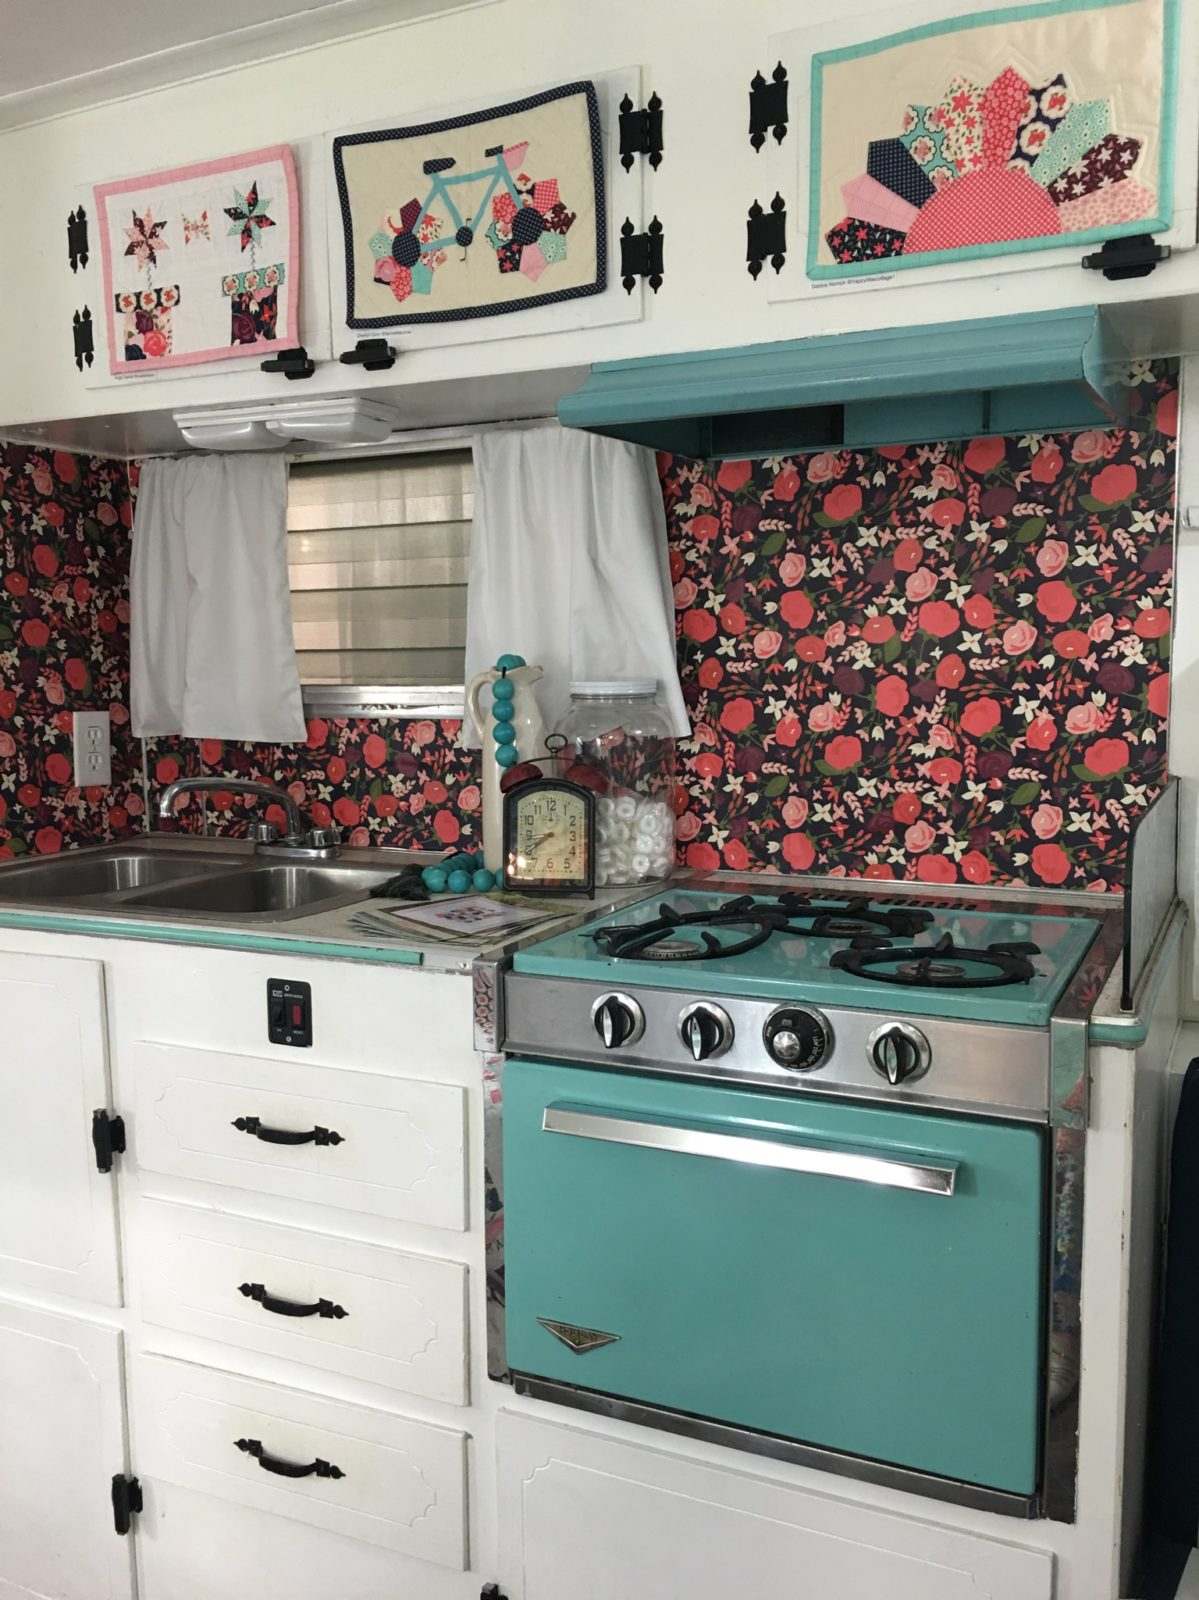 Look at the retro kitchen, Carina's designed Posy Garden Wallpaper and the aqua blue oven! Her cute family actually camps in this and everything works!